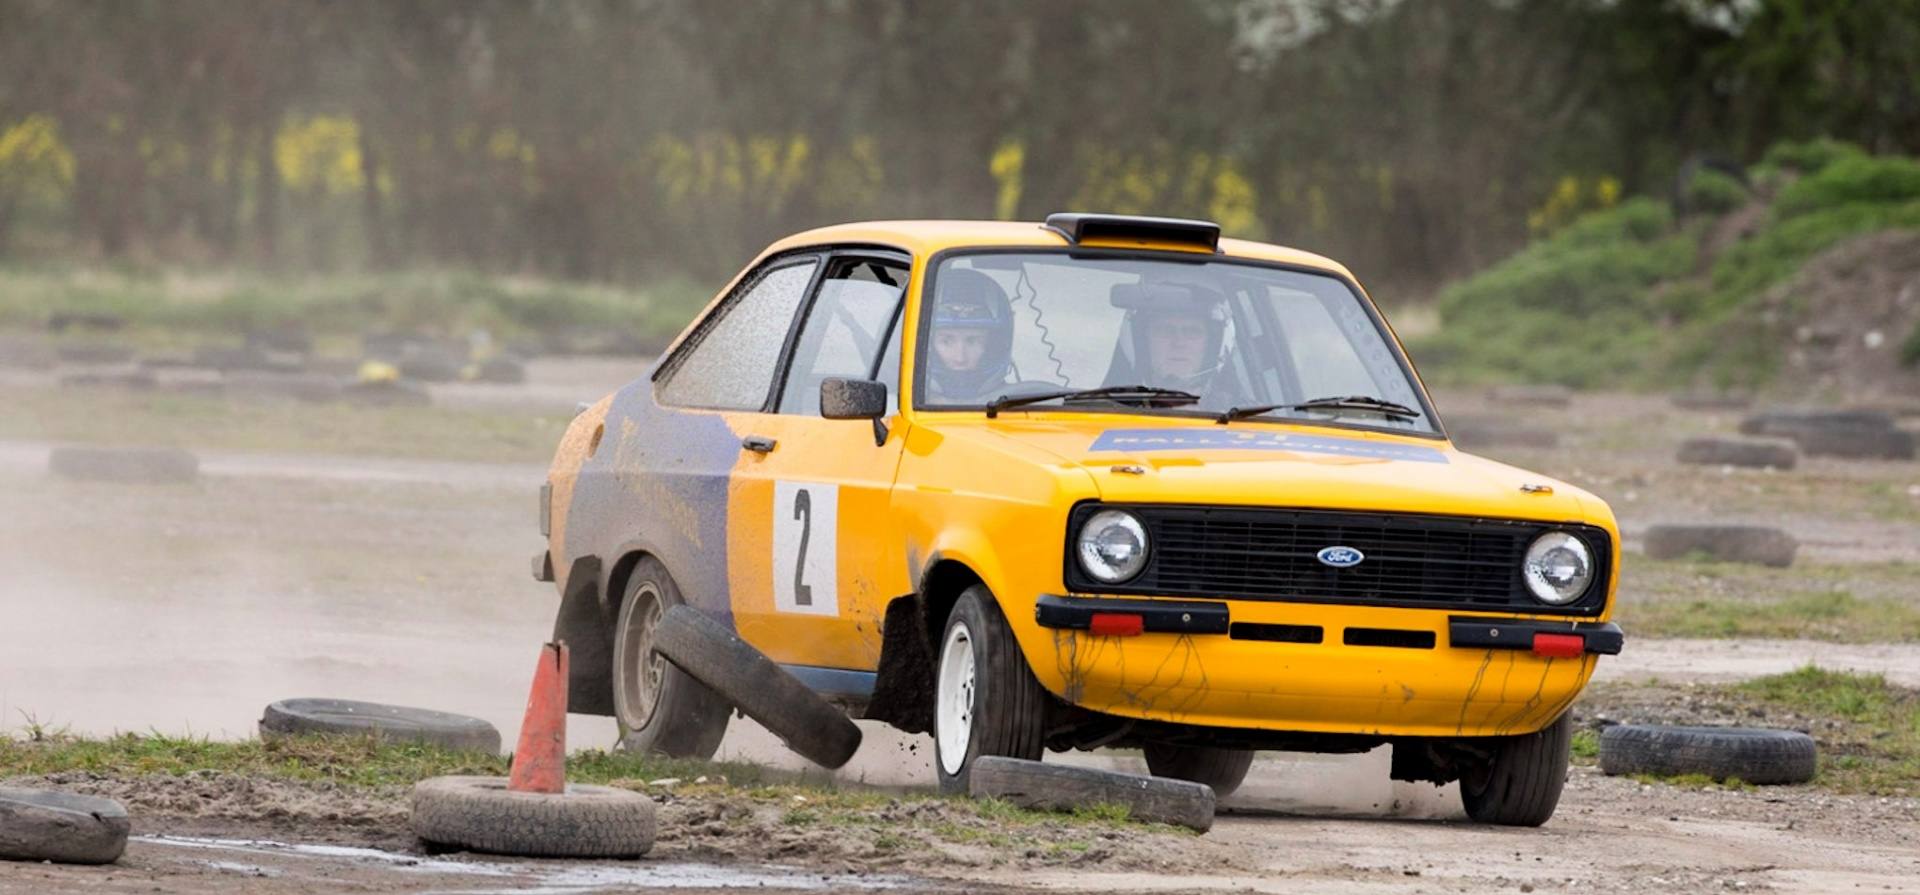 Full Day Rally Driving Introductory Experience in Yorkshire-5